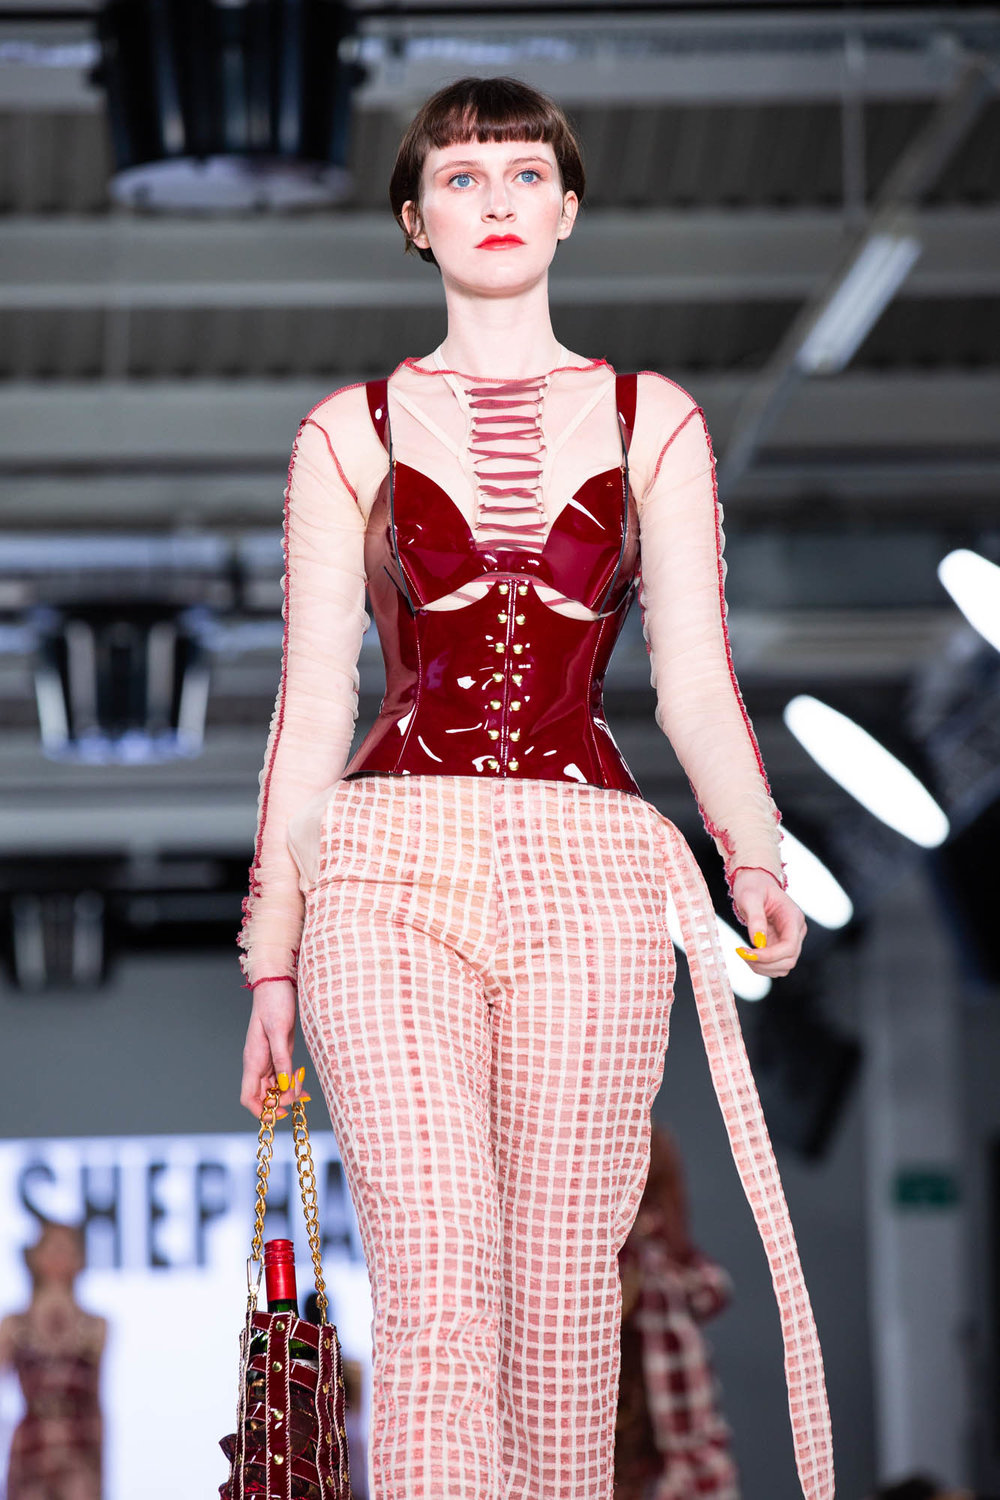 University of East London Catwalk 030618 Imageby Becky-13.jpg